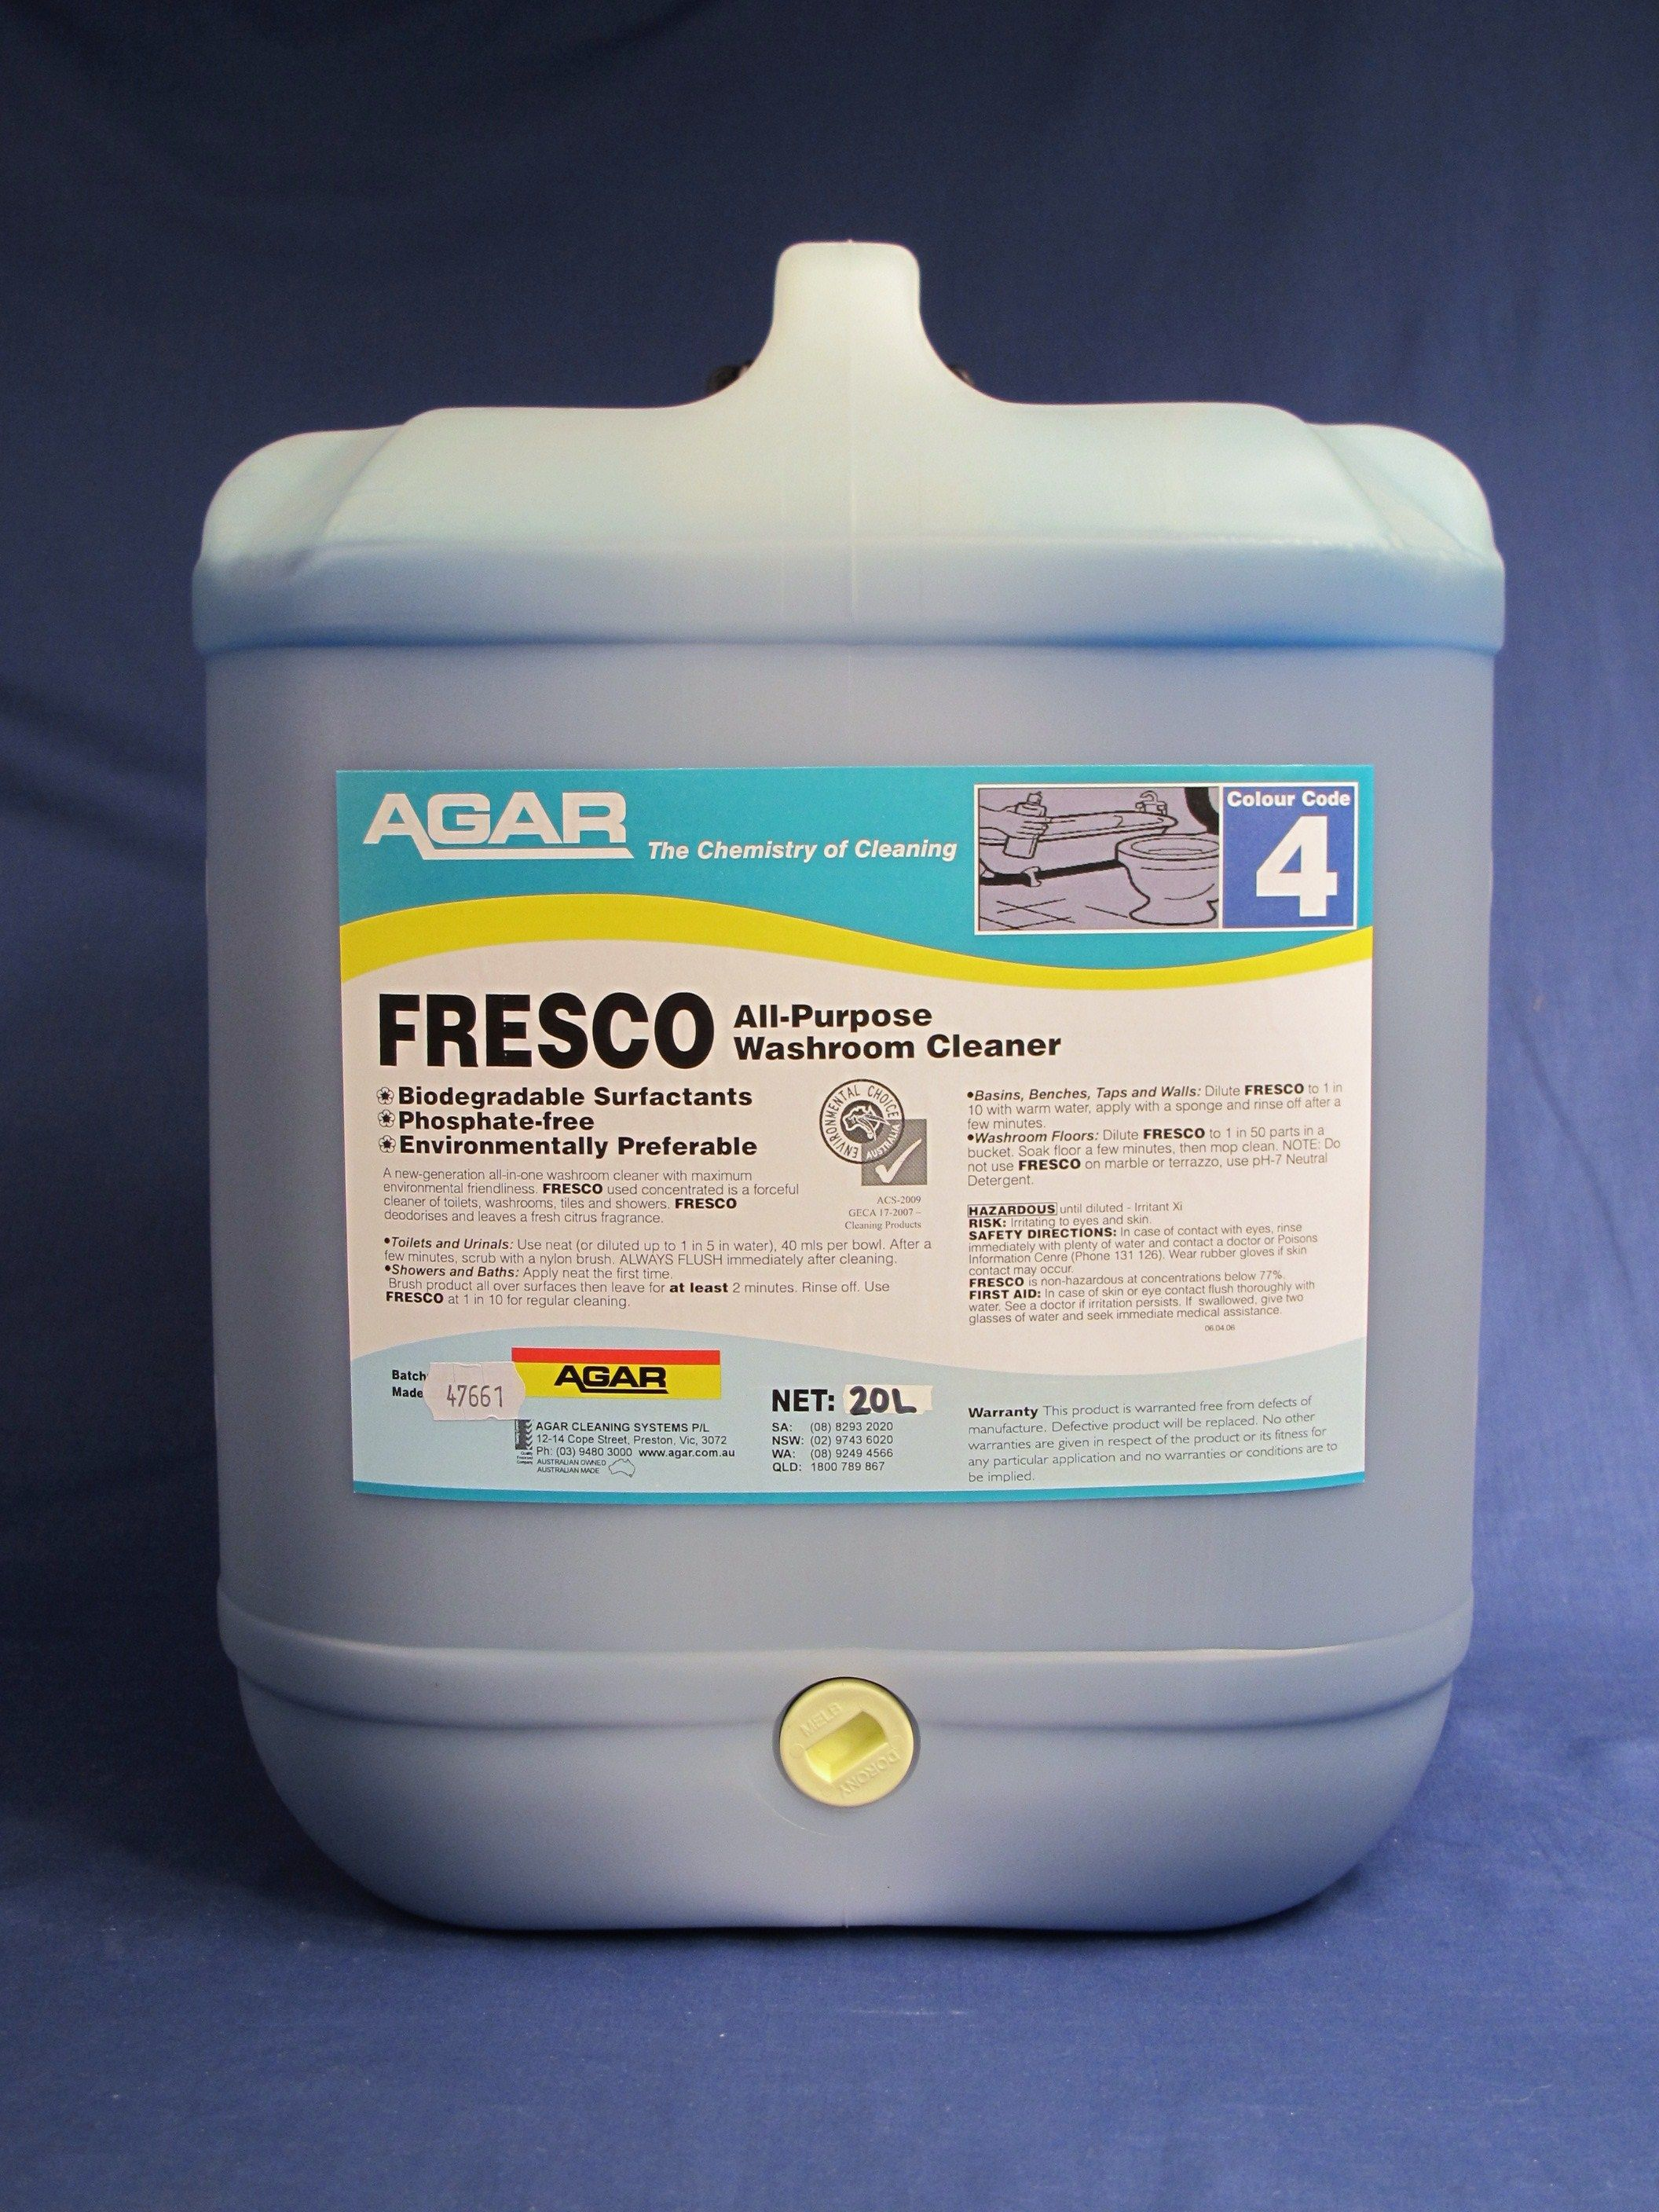 Fresco Http Www Geca Org Au Products All 54 Biodegradable Products Cleaning Fresco